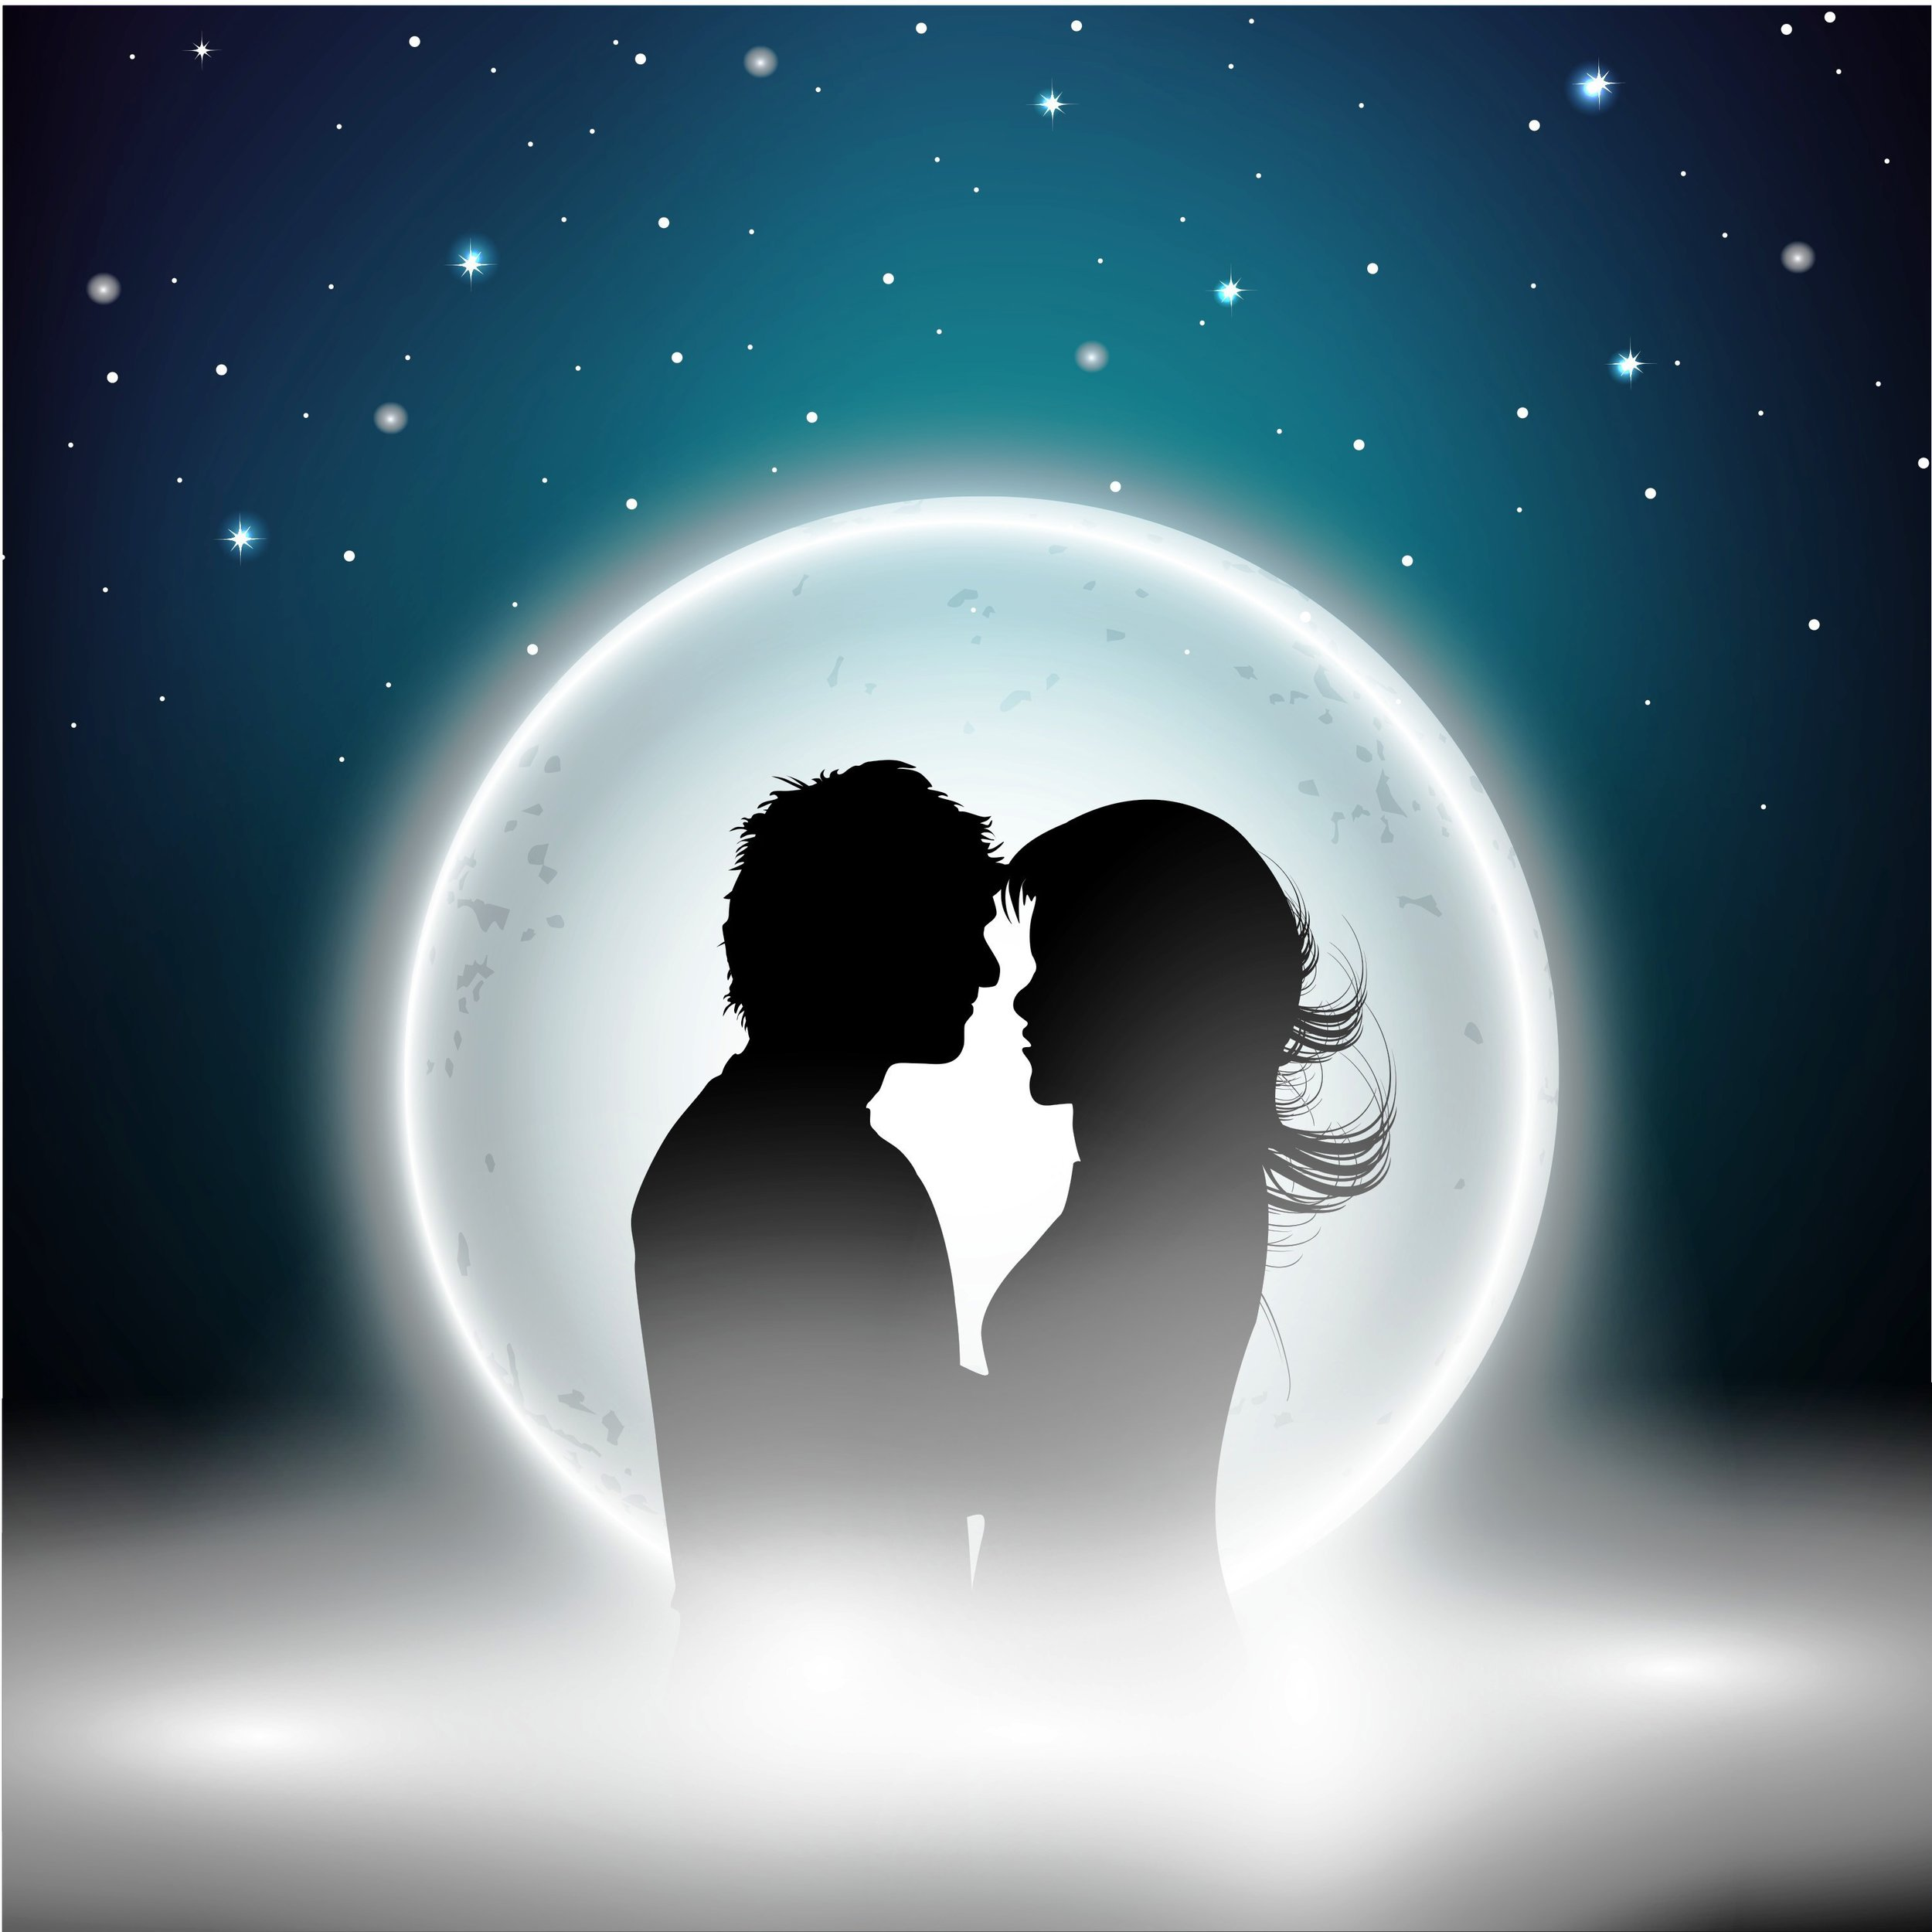 st-valentines-day-night-background-with-silhouette-of-couple_fk6uYsOu